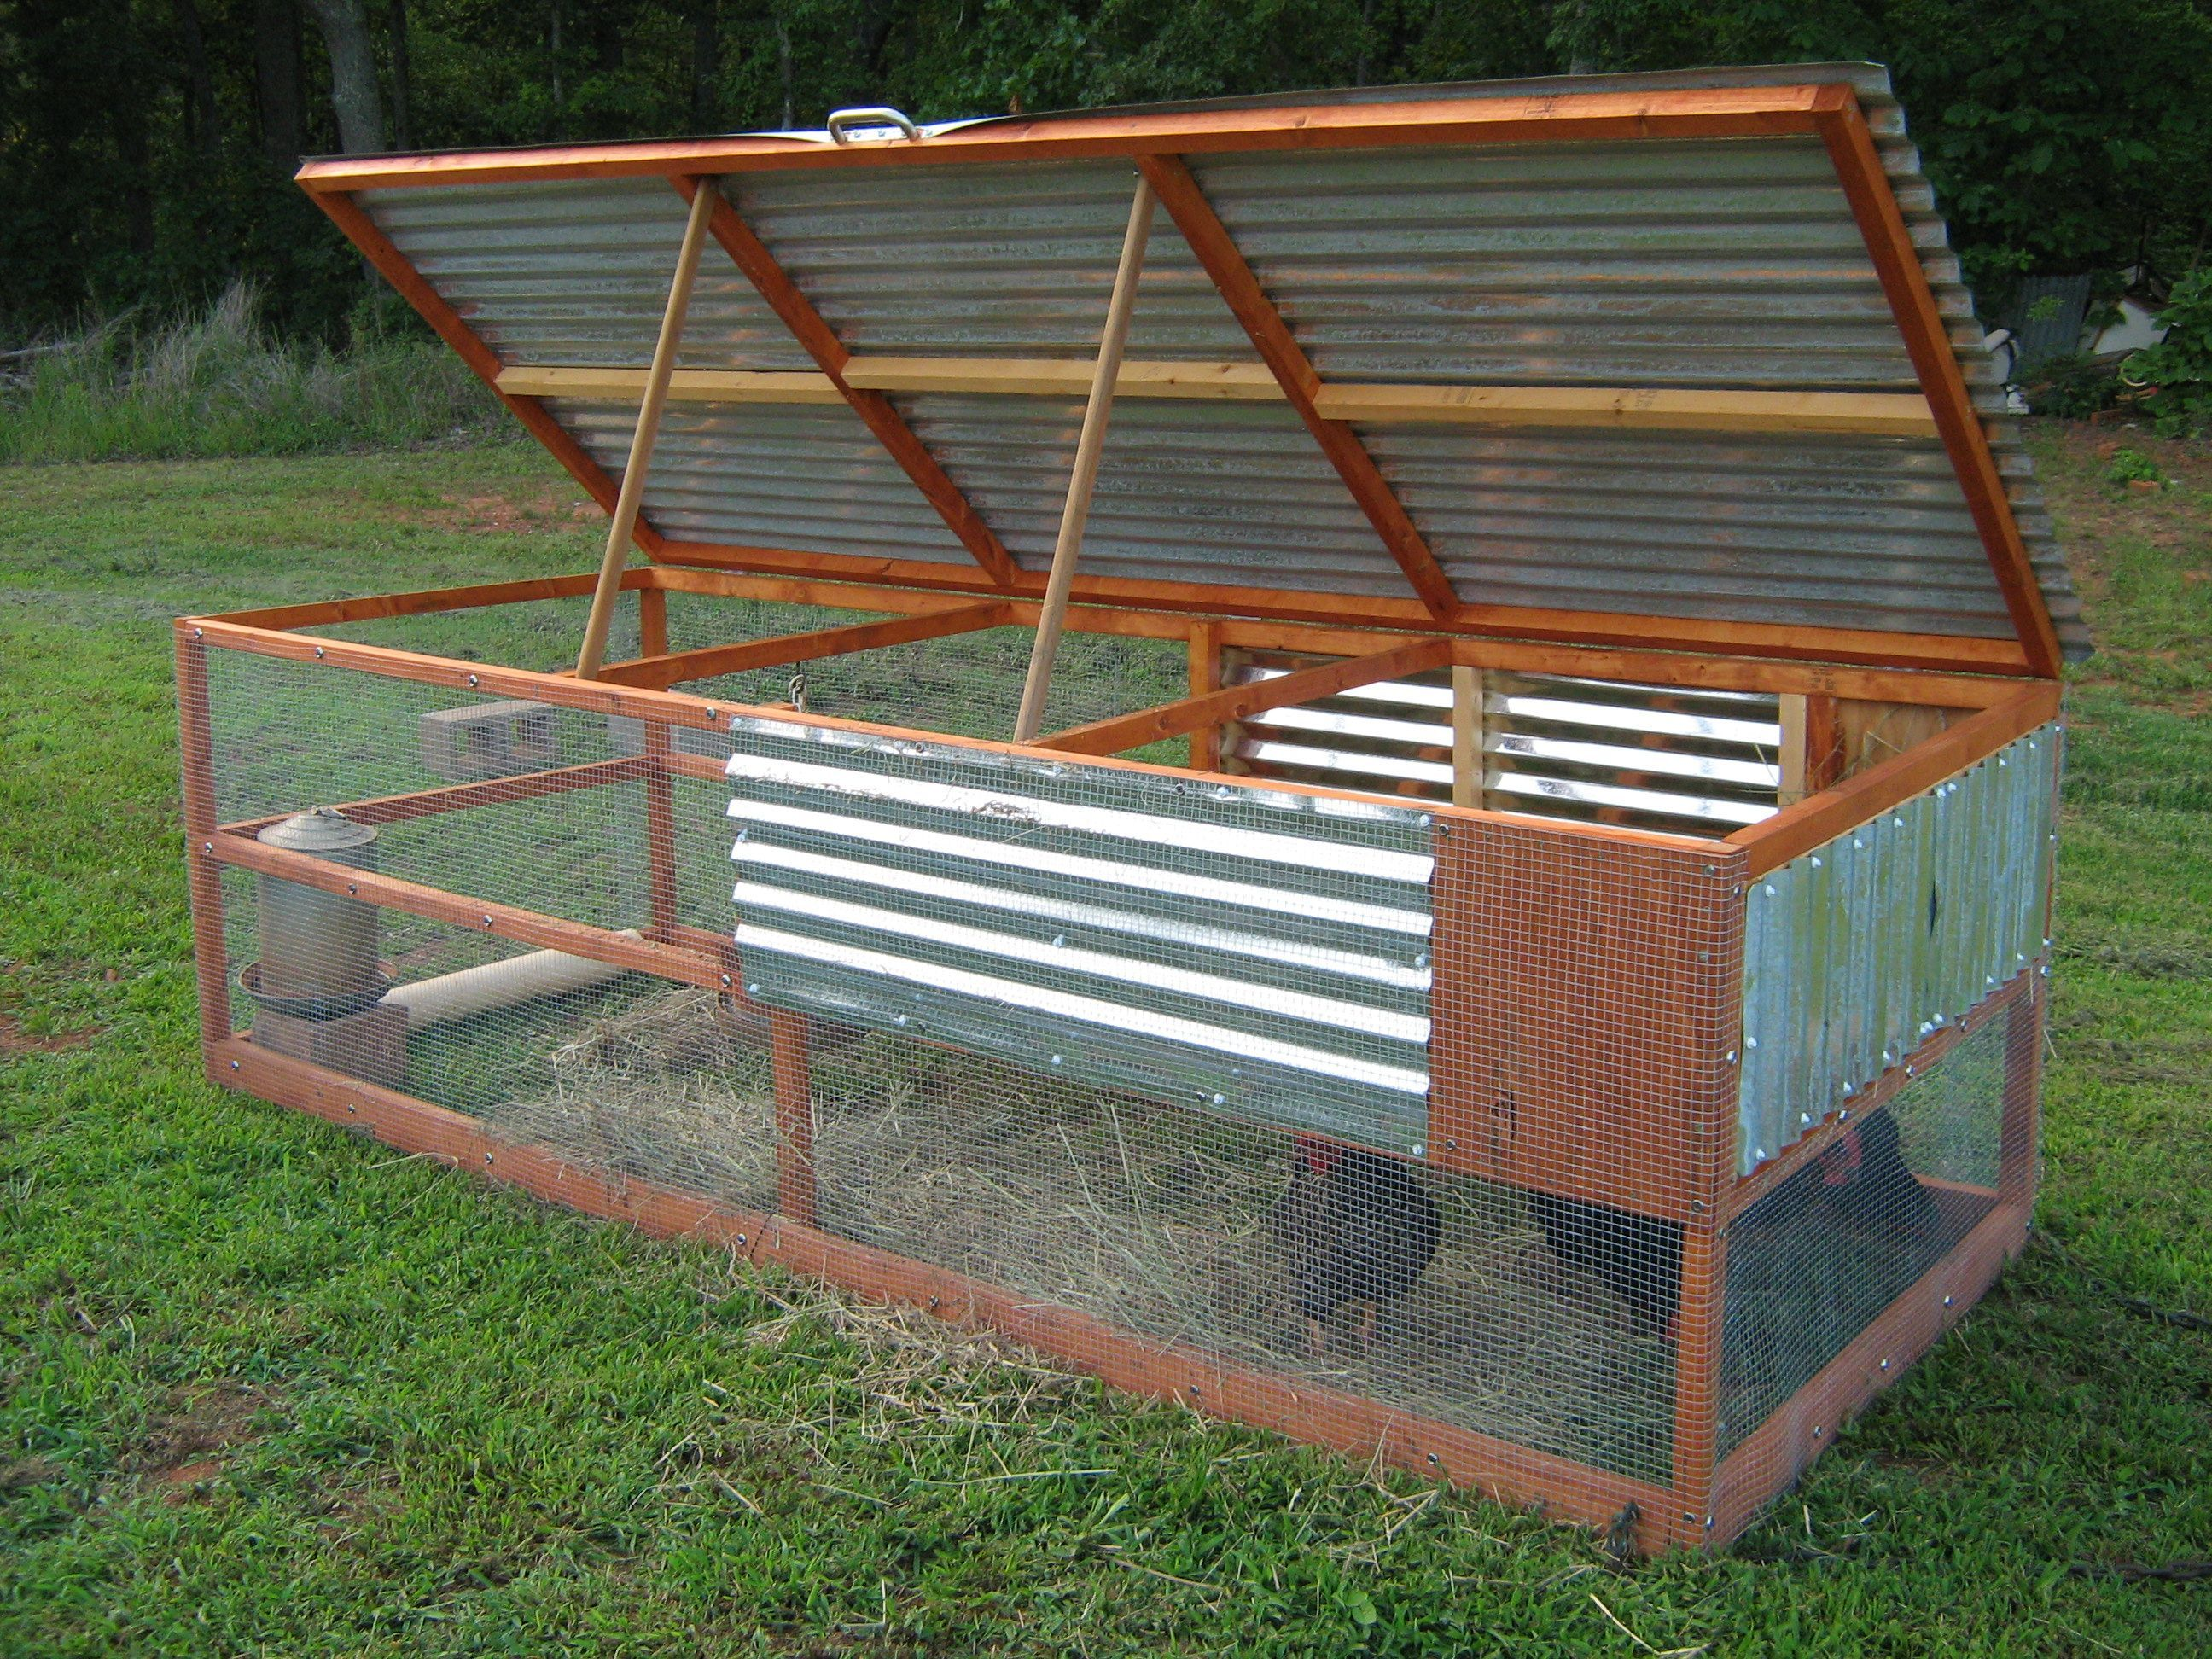 a frame chicken tractor plans free build definition of build by the free dictionary build bld v built